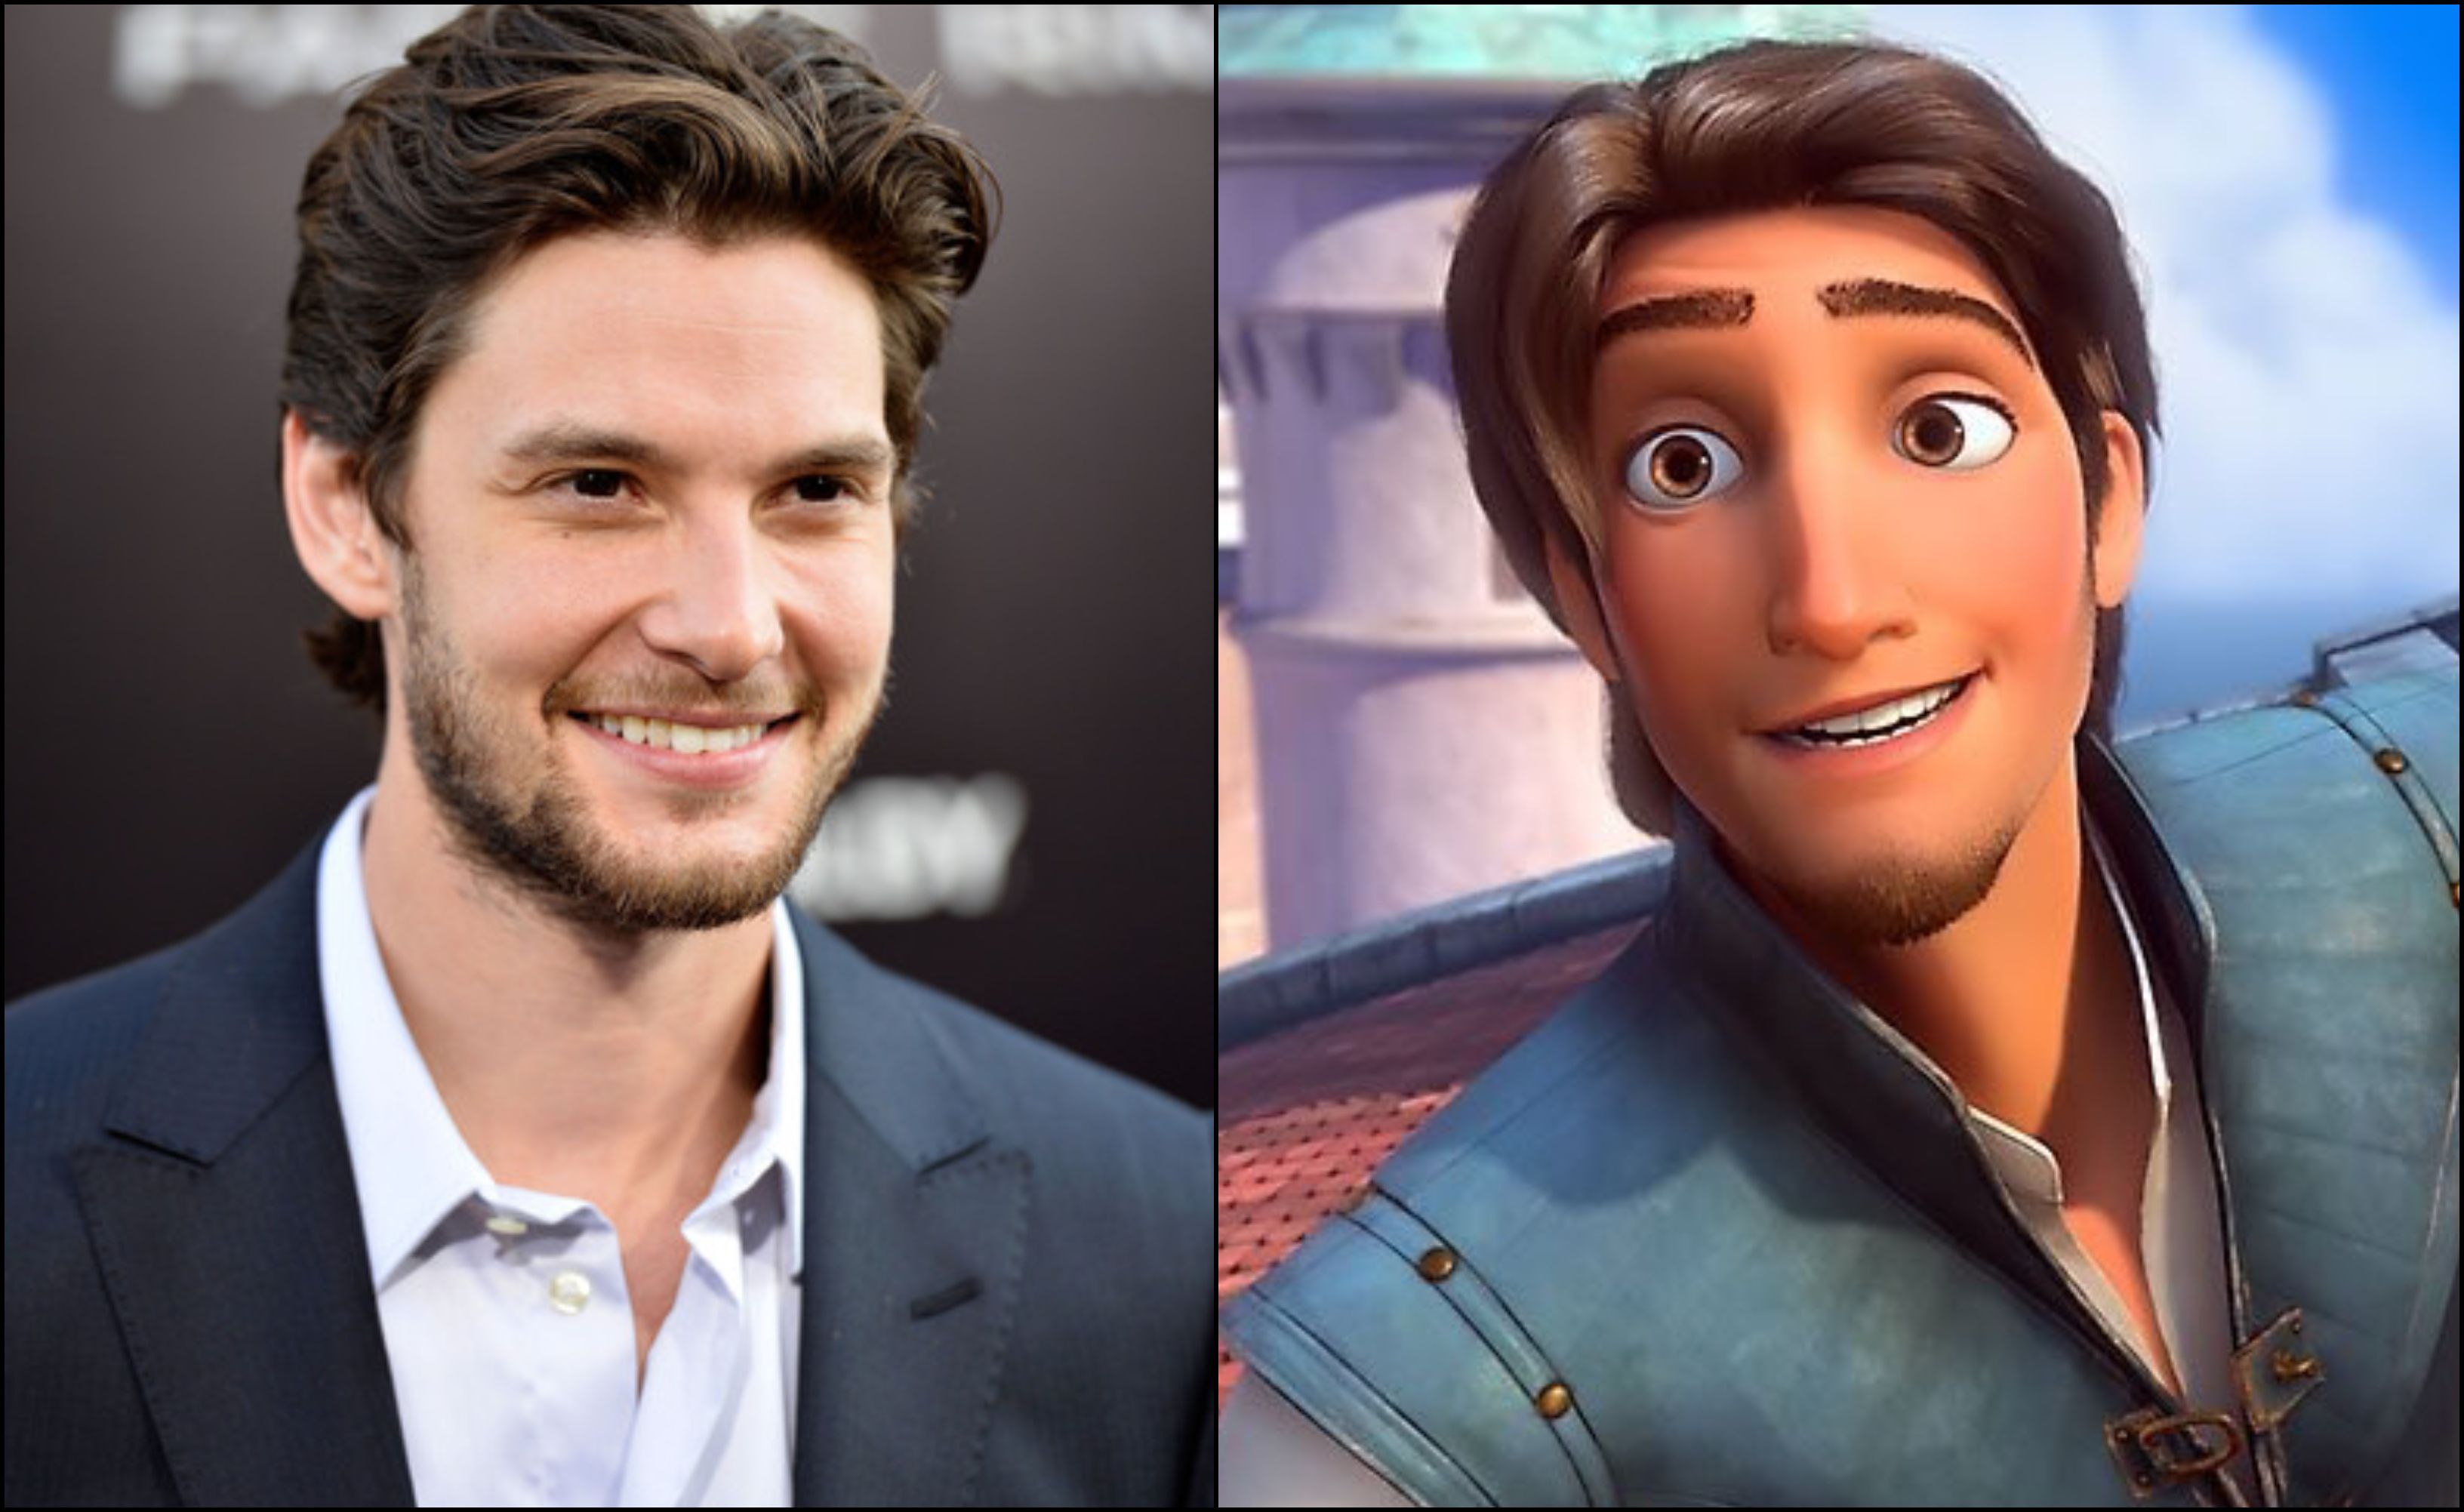 Prince Caspian And The Punisher Star Ben Barnes Wants To Play